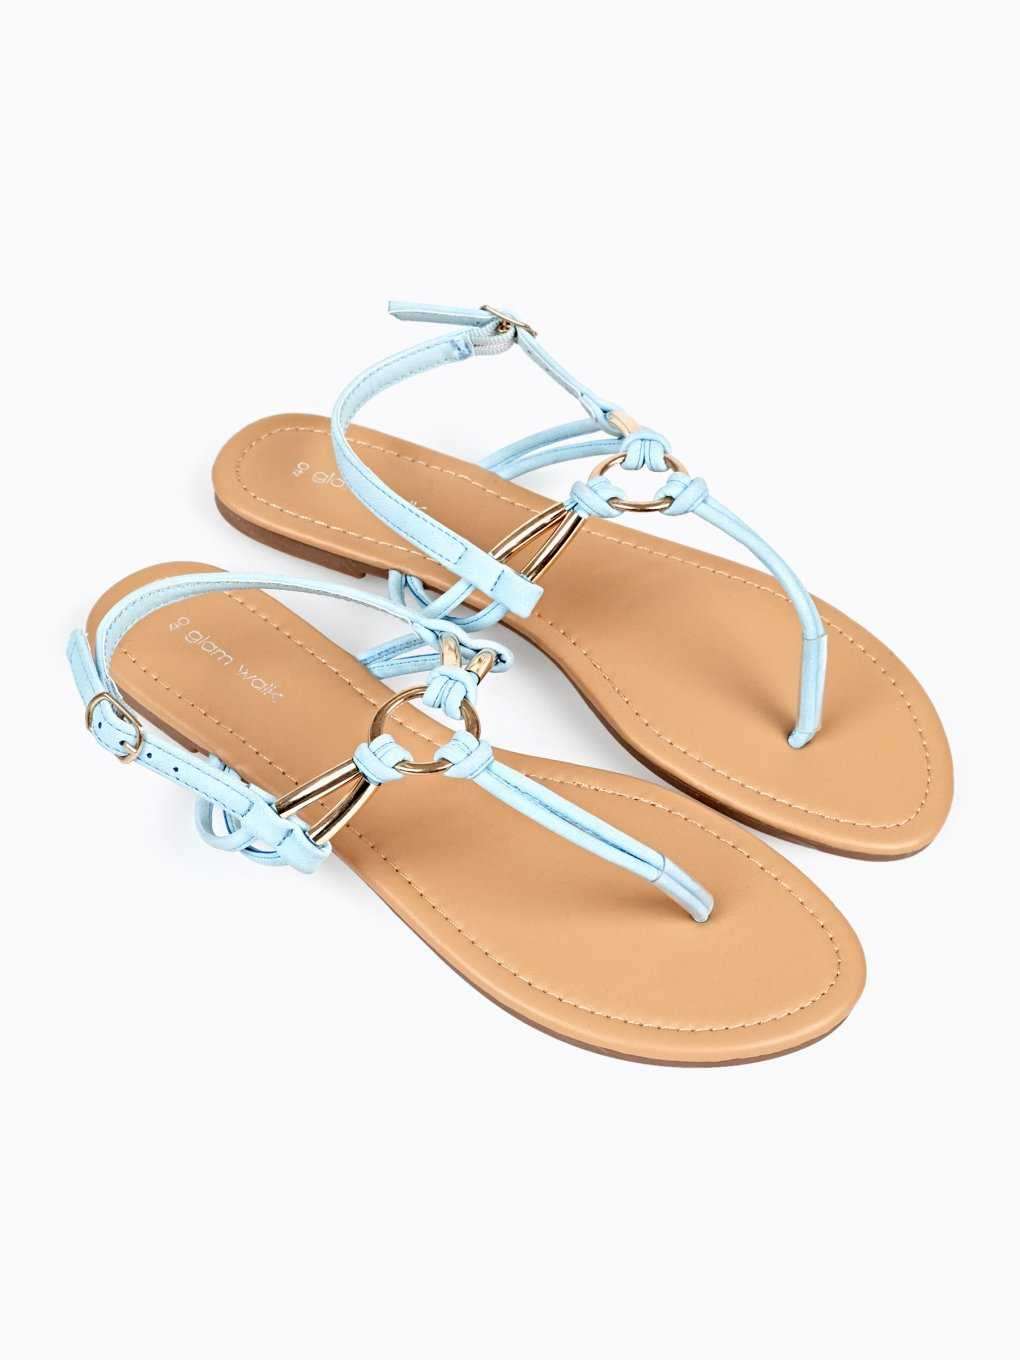 FLAT SANDALS WITH METAL DETAILS